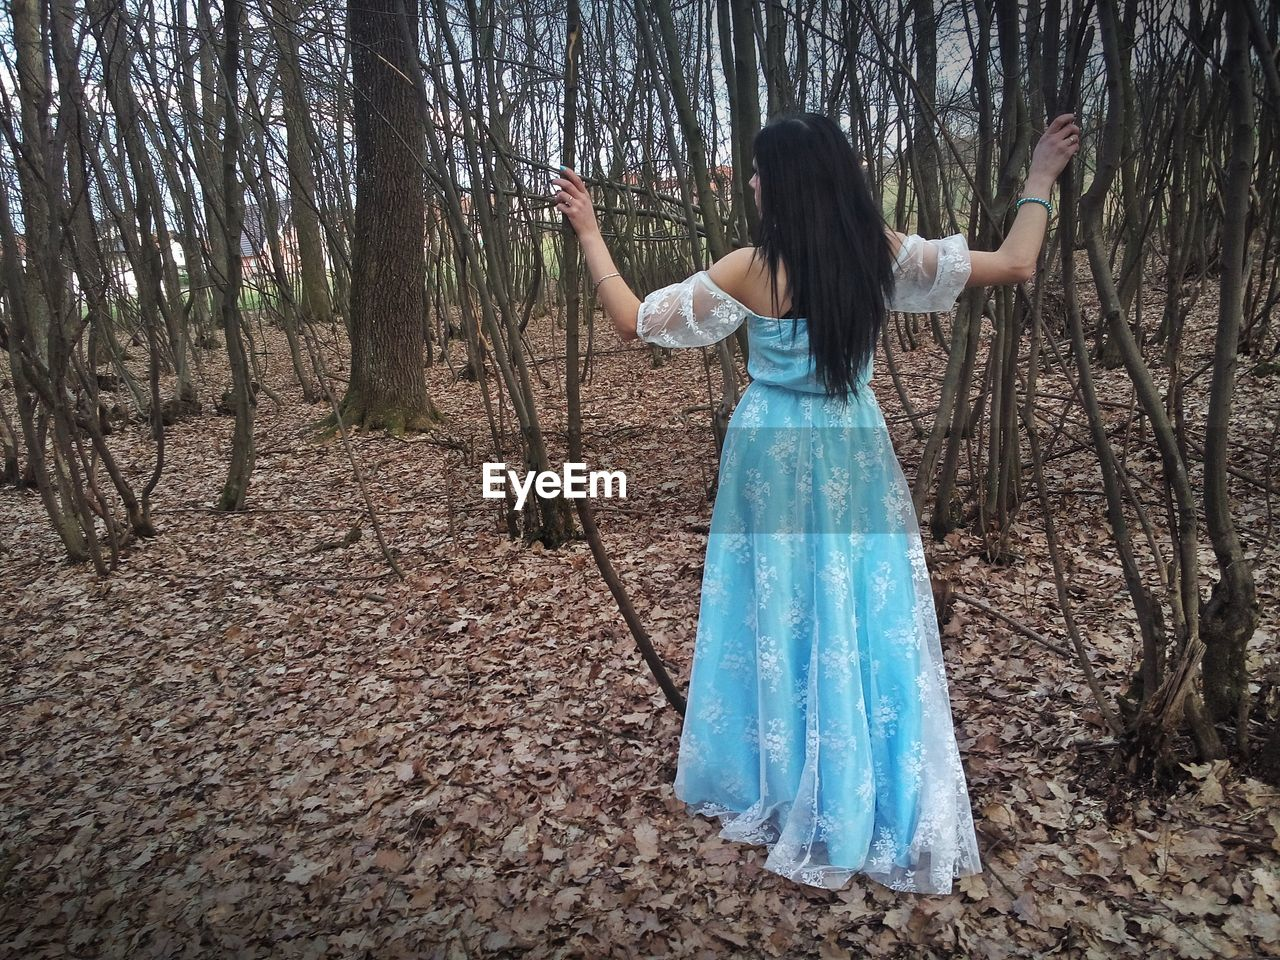 Woman wearing blue dress while standing in forest